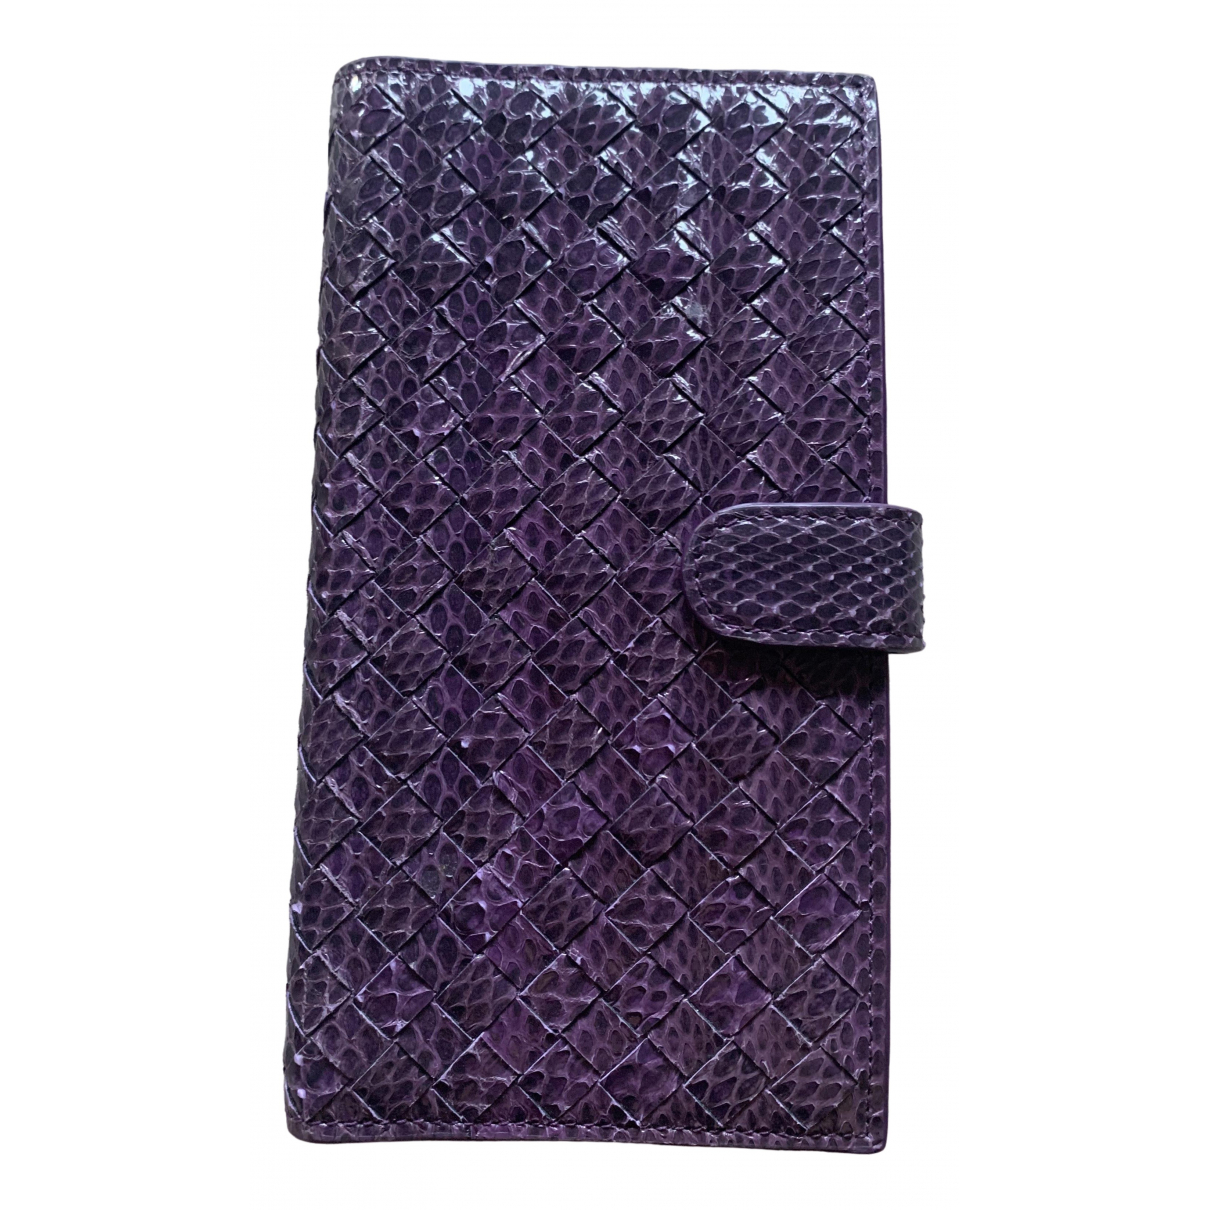 Bottega Veneta \N Purple Python Accessories for Life & Living \N